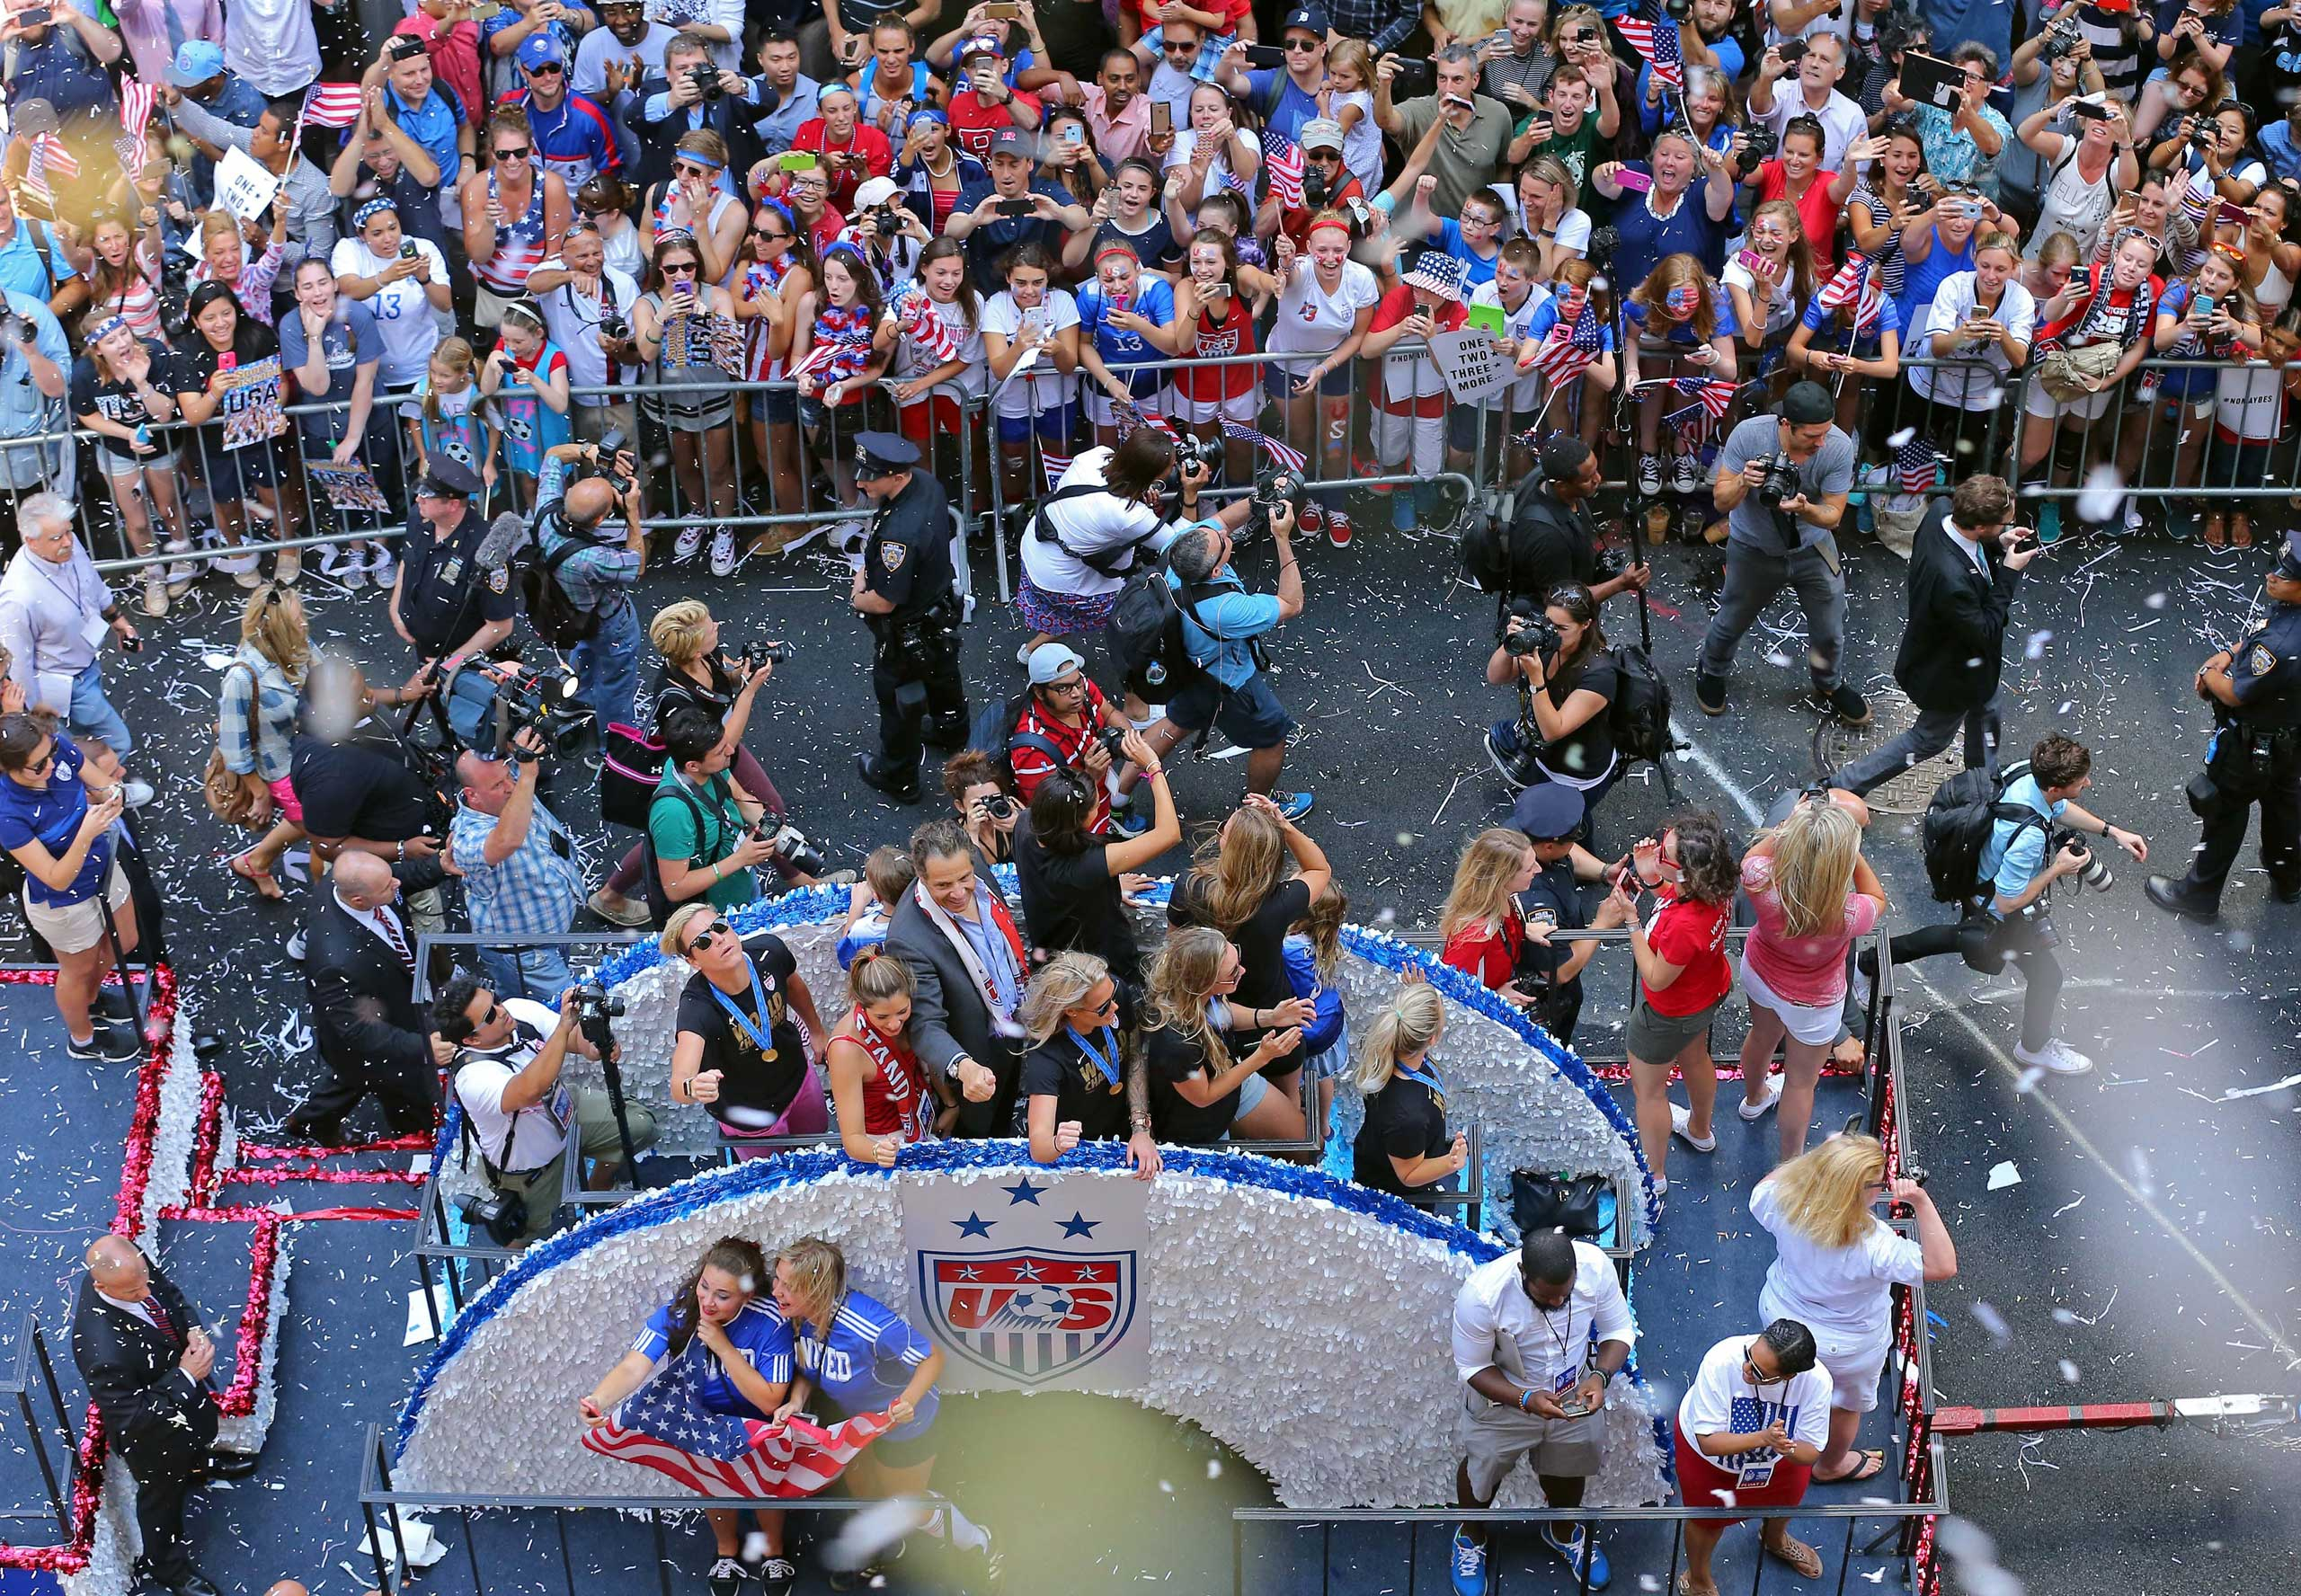 New York Governor Andrew Cuomo, at center on float, gestures during a ticker tape parade for the U.S. women's soccer team in New York City on July 10, 2015.